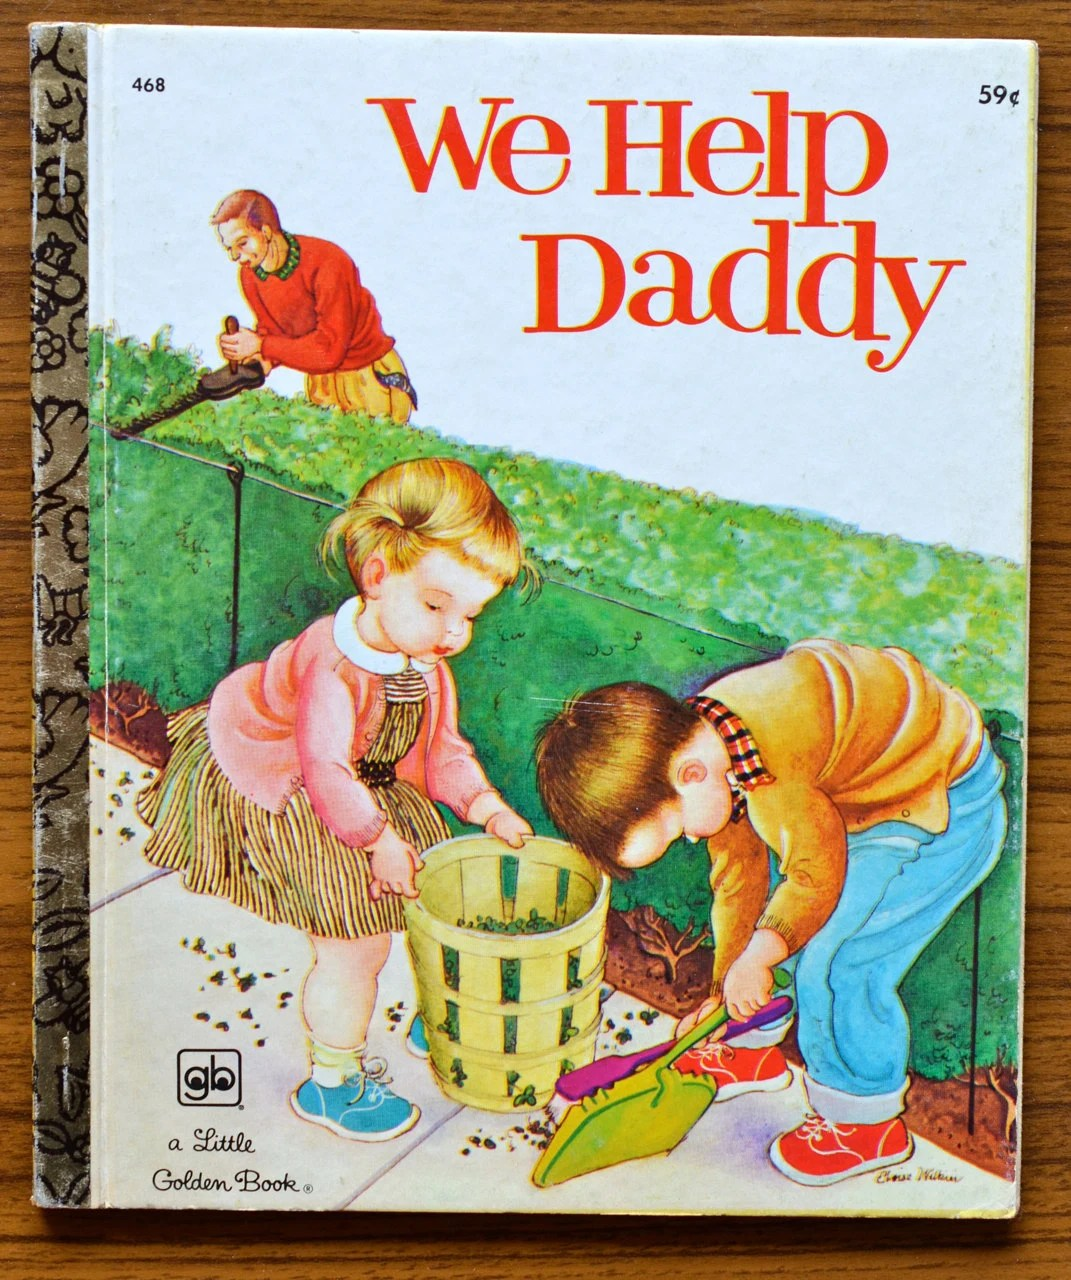 We Help Daddy, Vintage Little Golden Book, Children's Book, Kids, Unique Father's Day Card, For Dad